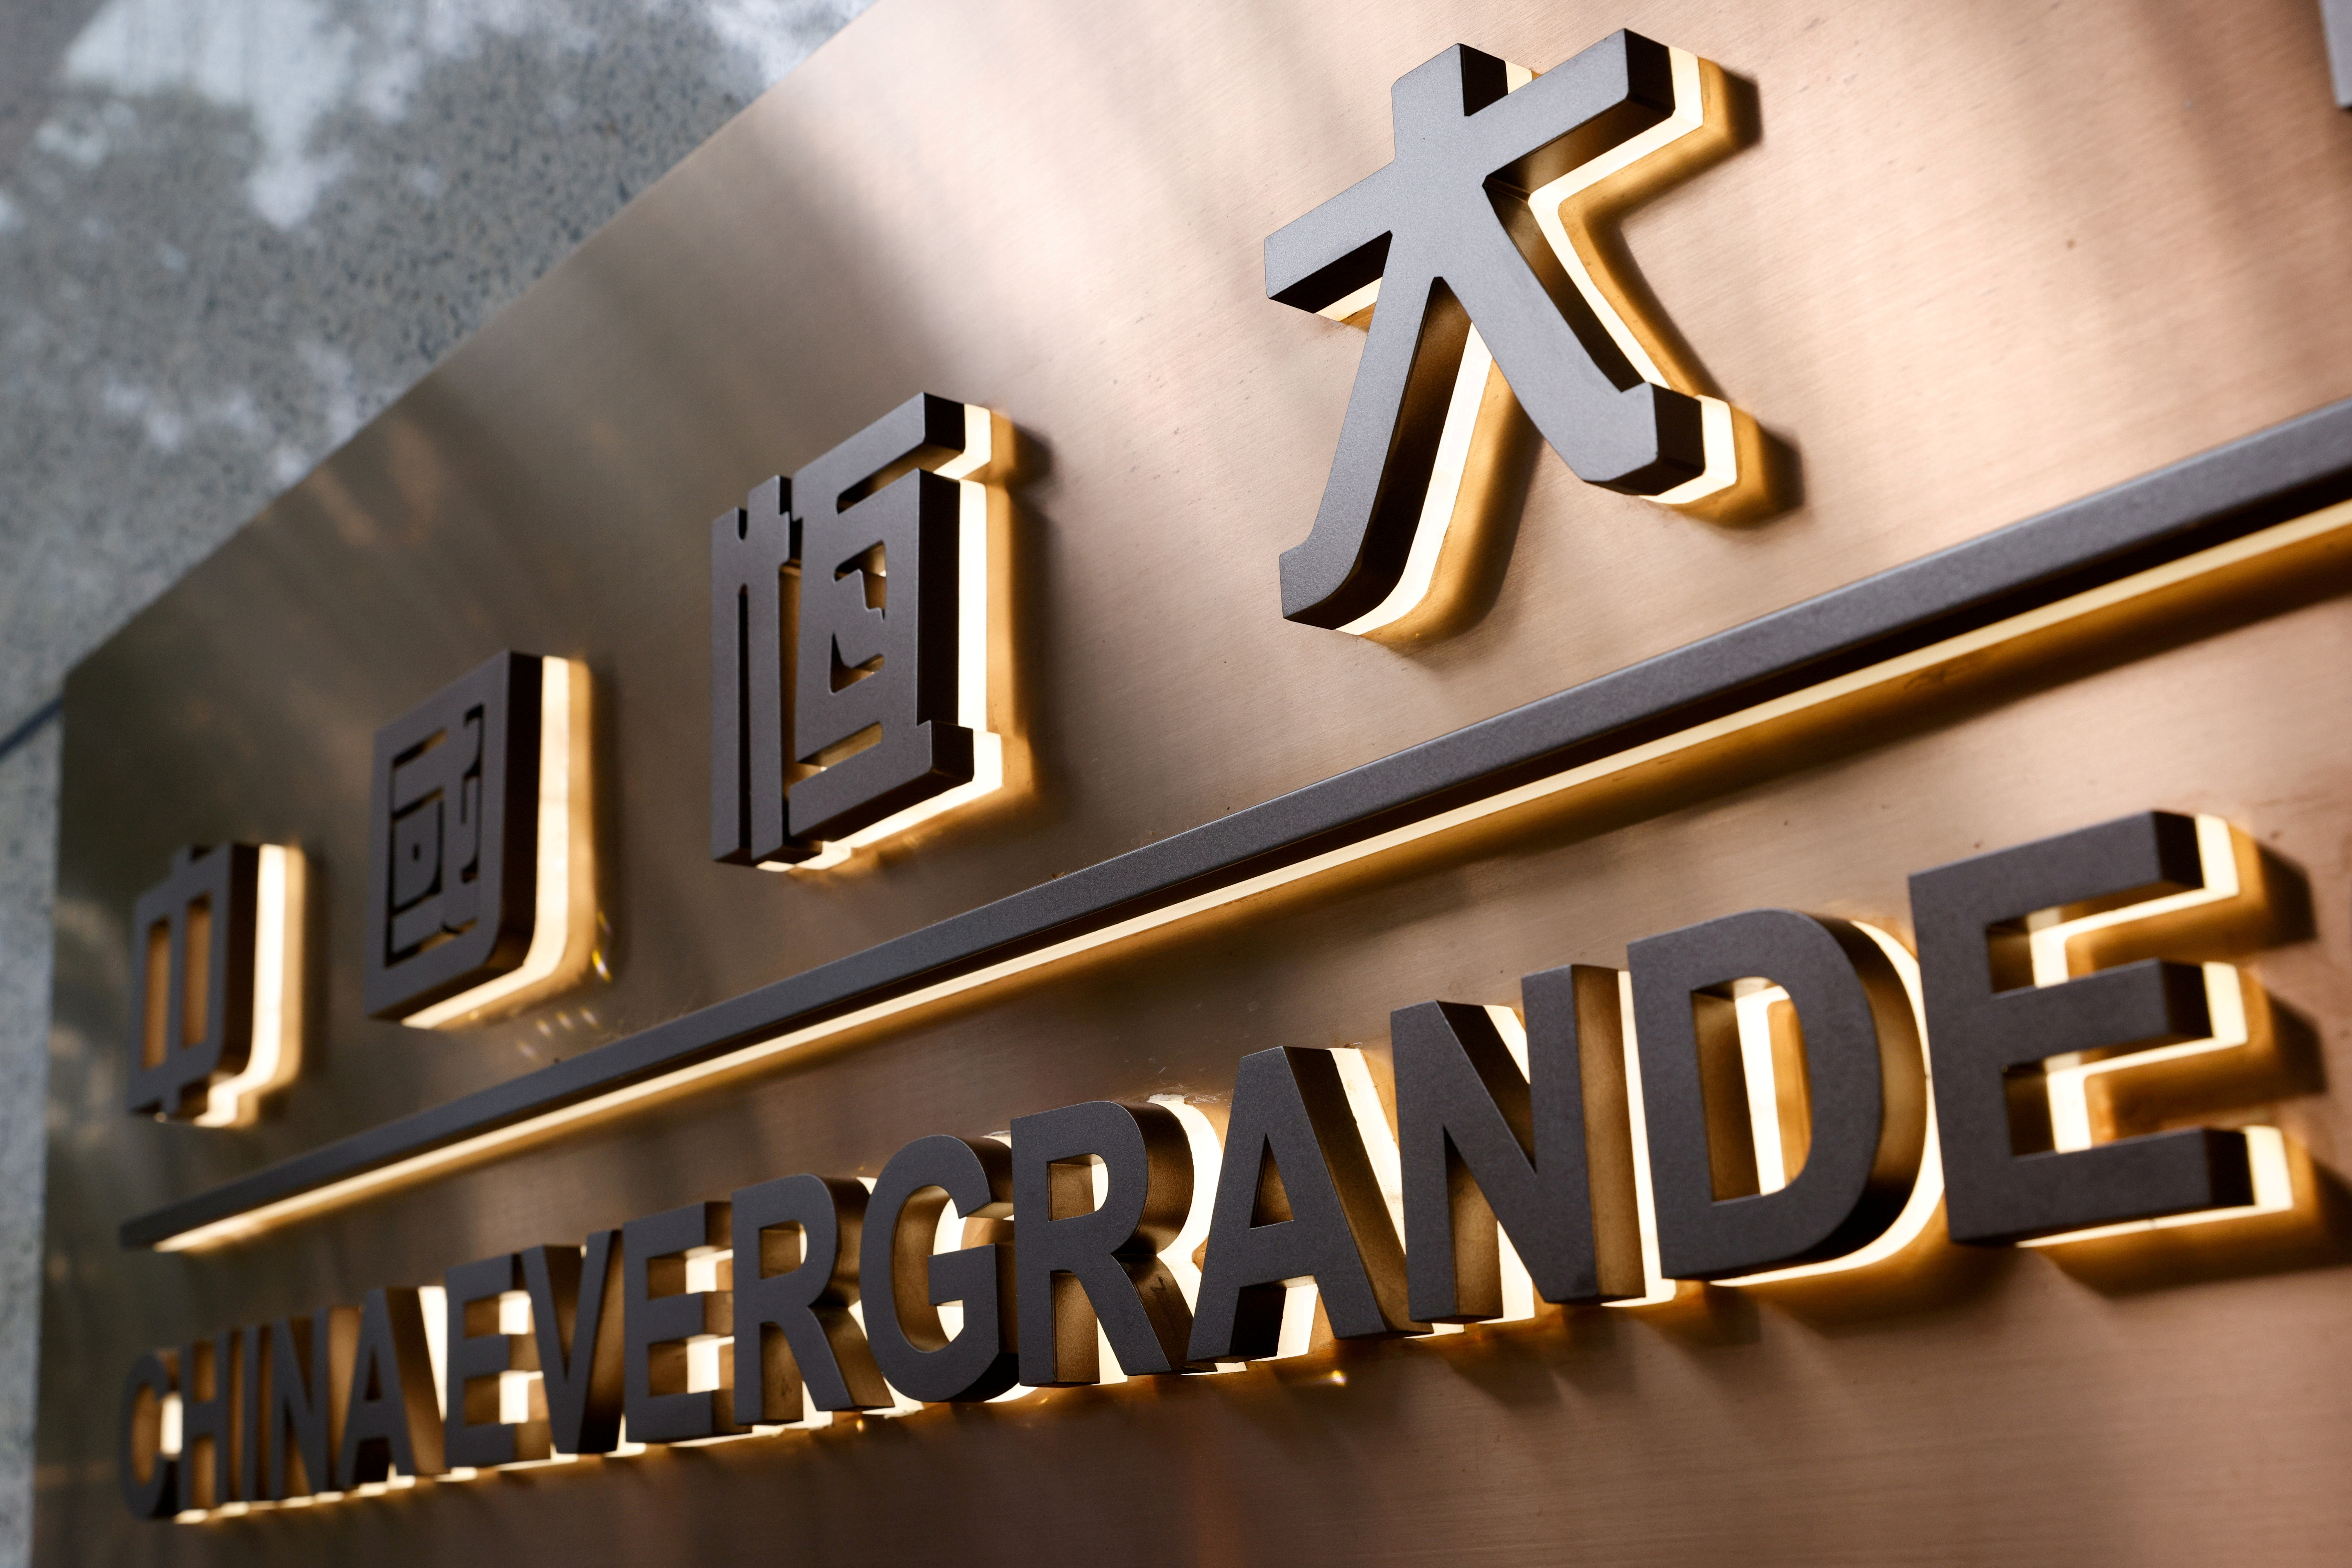 The China Evergrande Centre building sign is seen in Hong Kong, China, September 23, 2021. REUTERS/Tyrone Siu//File Photo